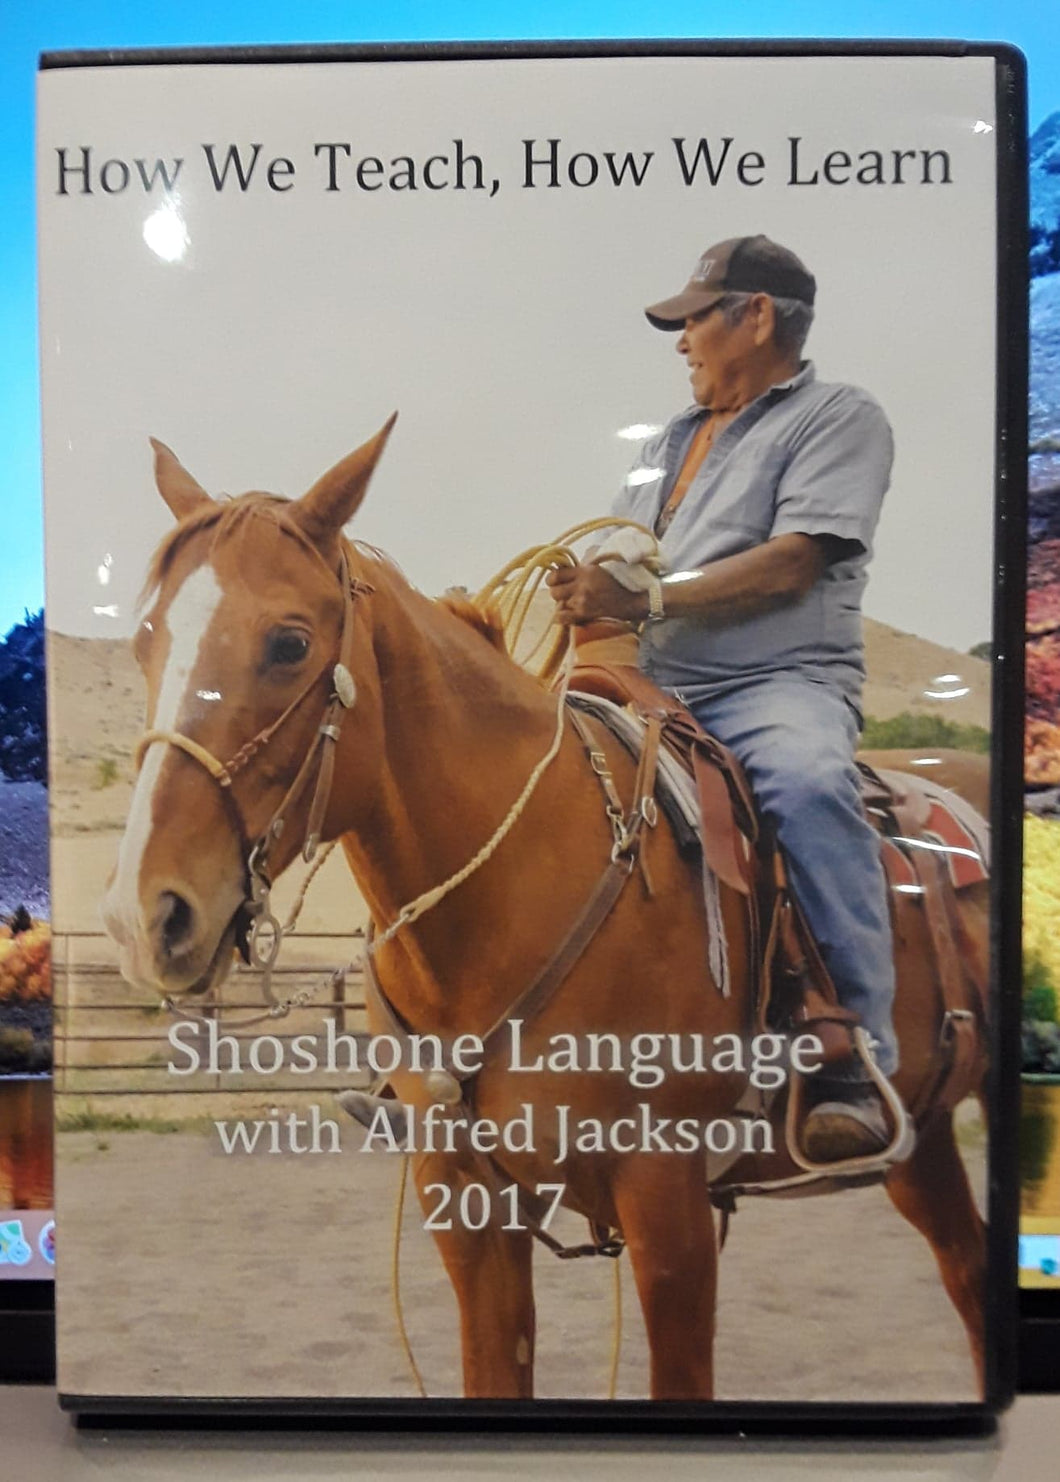 DVD - How We Teach, How We Learn - Shoshone Language with Alfred Jackson 2017